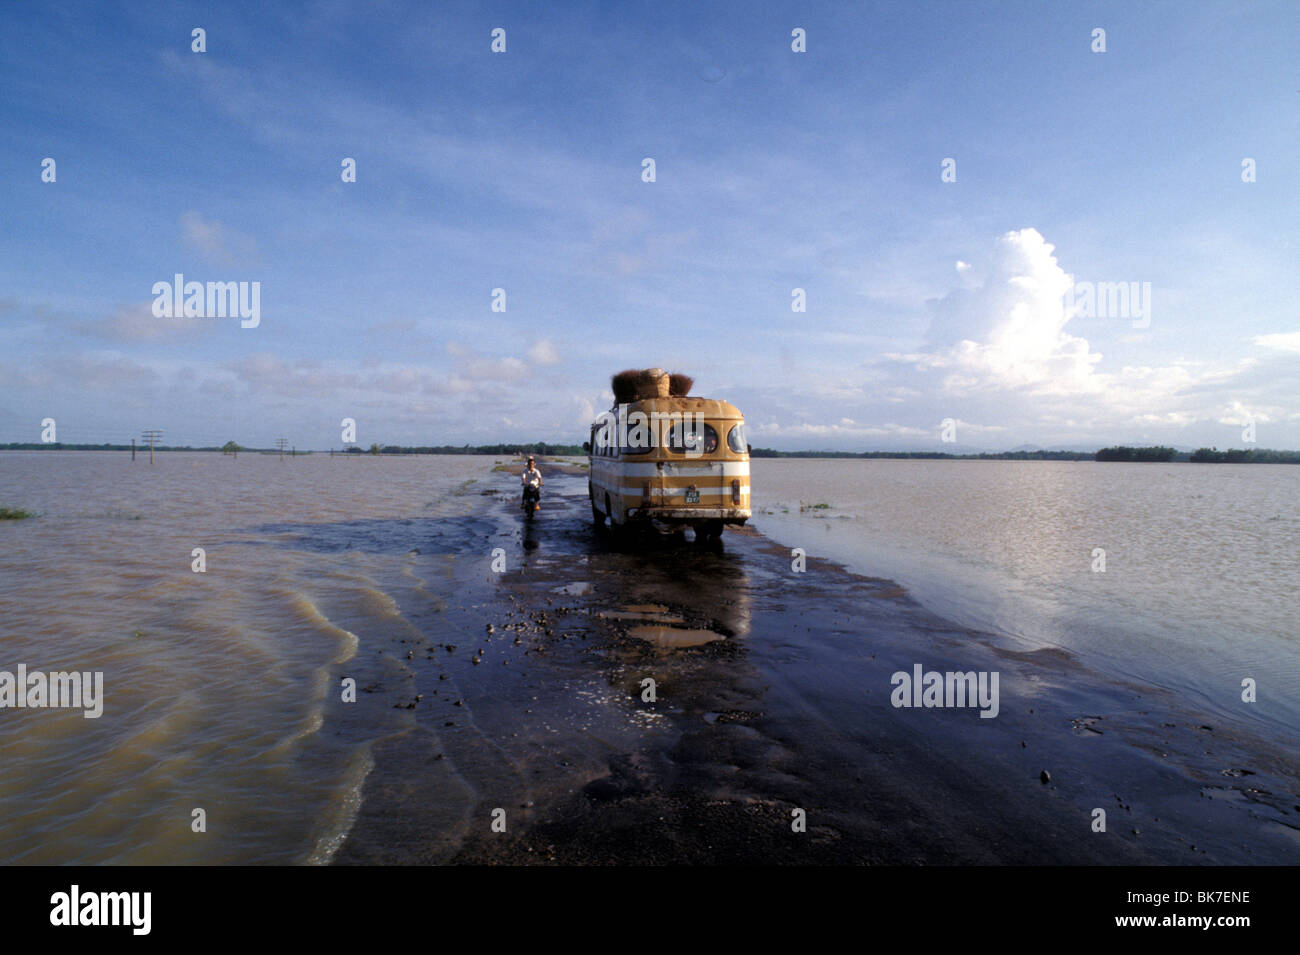 Flooded countryside, Vietnam, Indochina, Southeast Asia, Asia - Stock Image